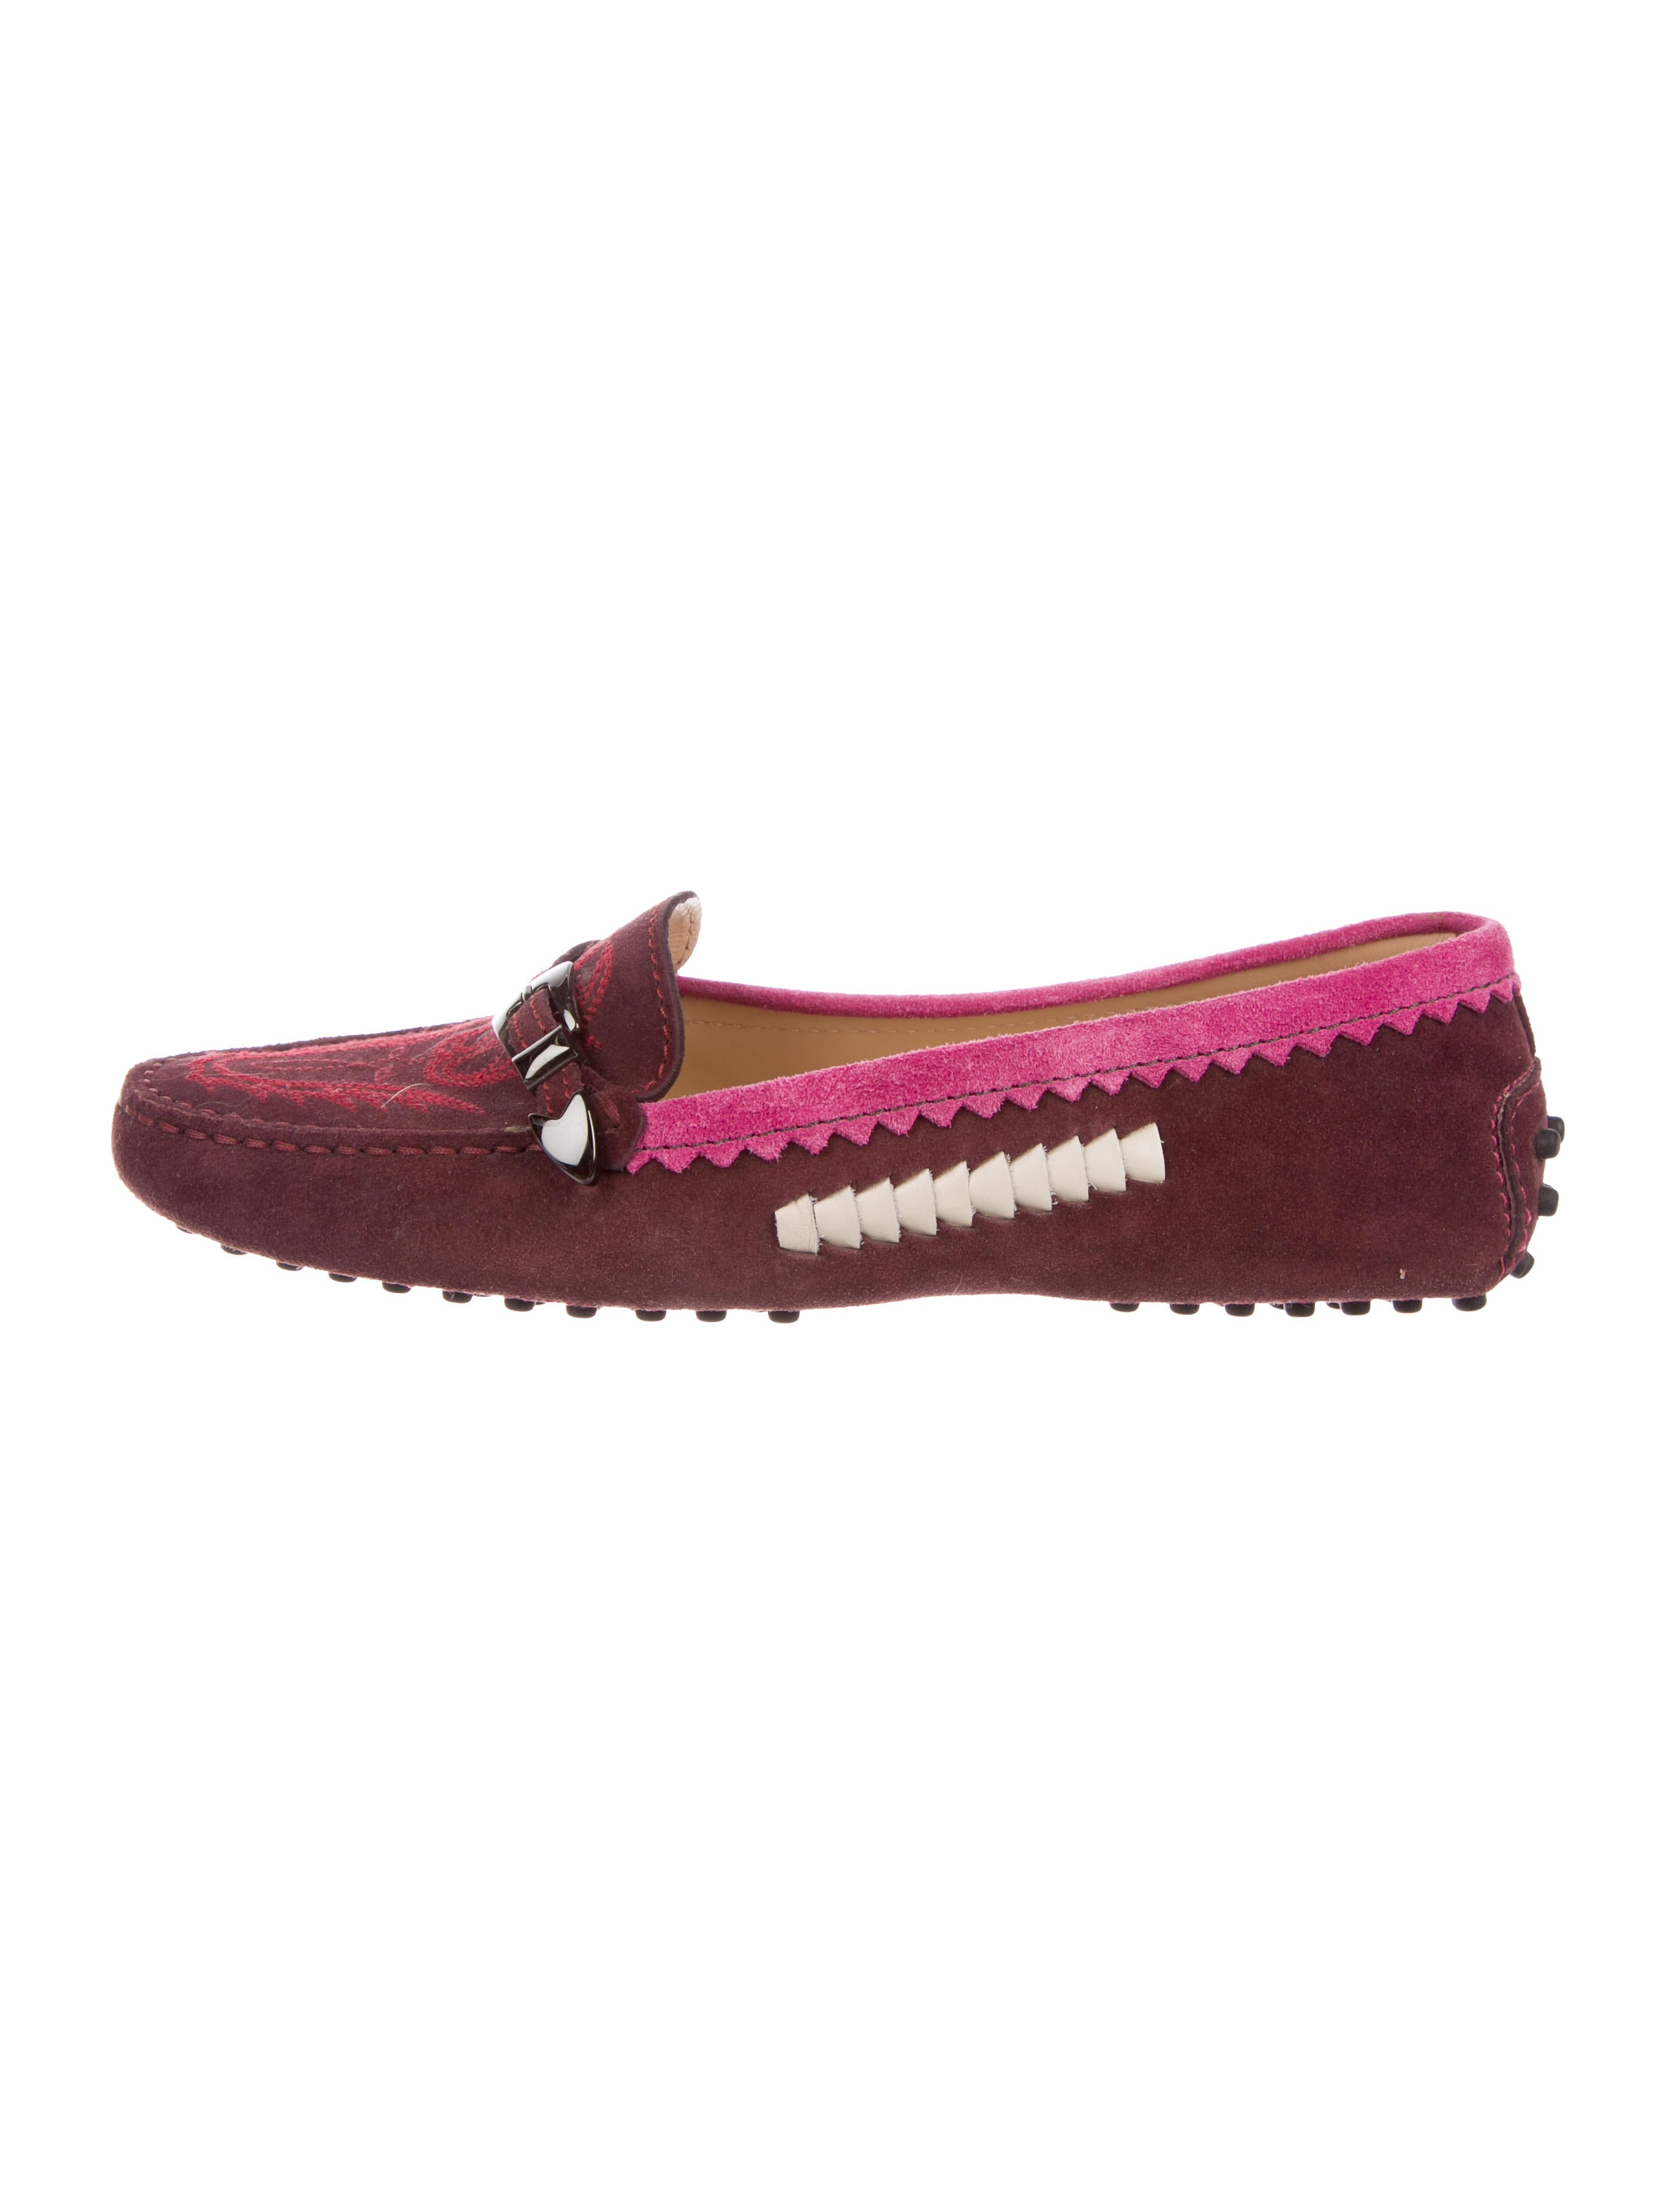 Tod's Suede Embroidered Loafers 100% original online sale really for cheap tumblr online VdqHy